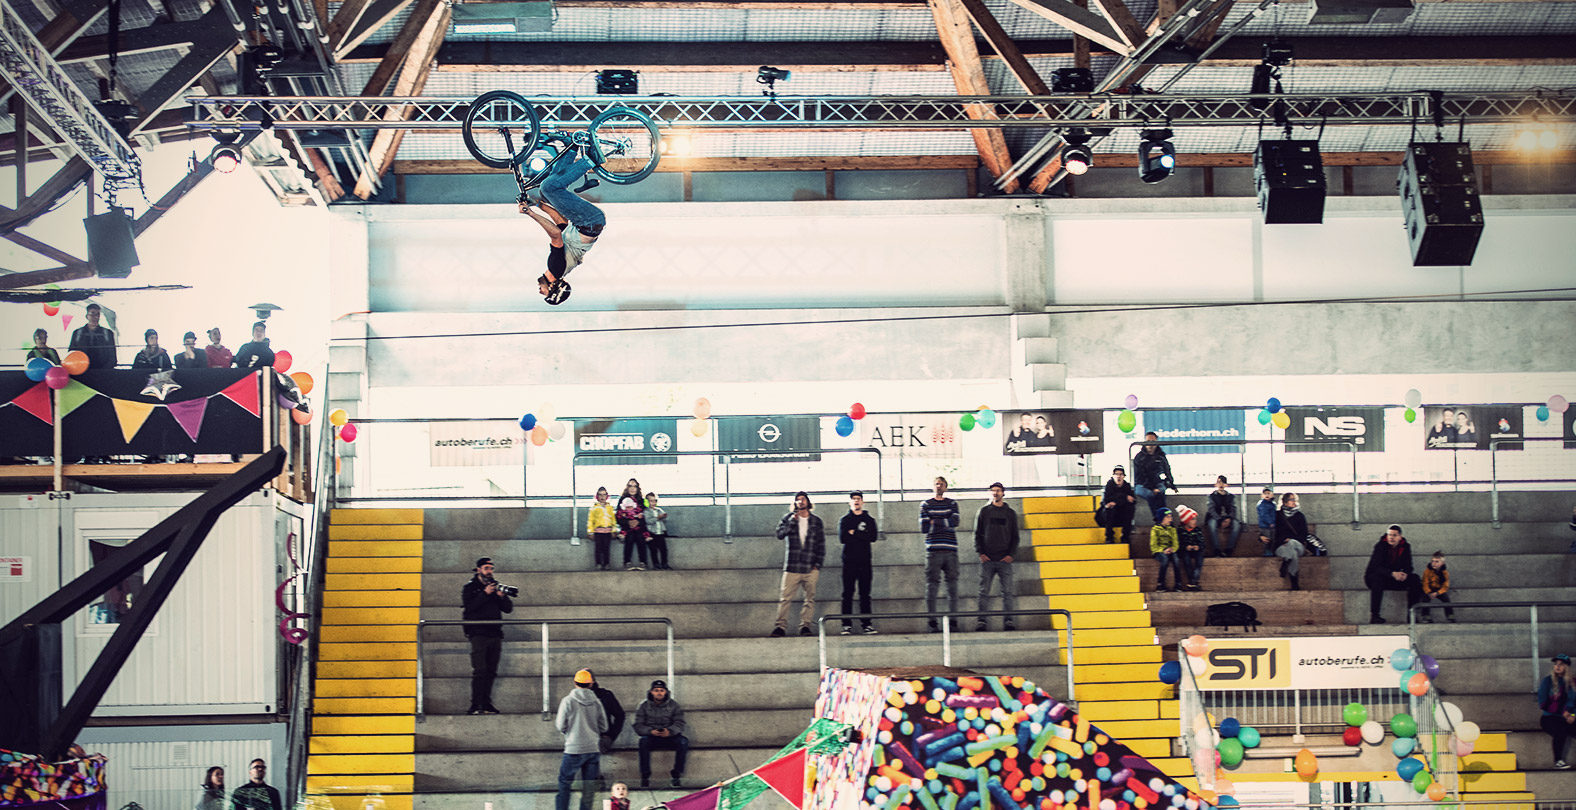 Swatch Rocket Air 2019 Chris Räber photo by Dominik Bosshard